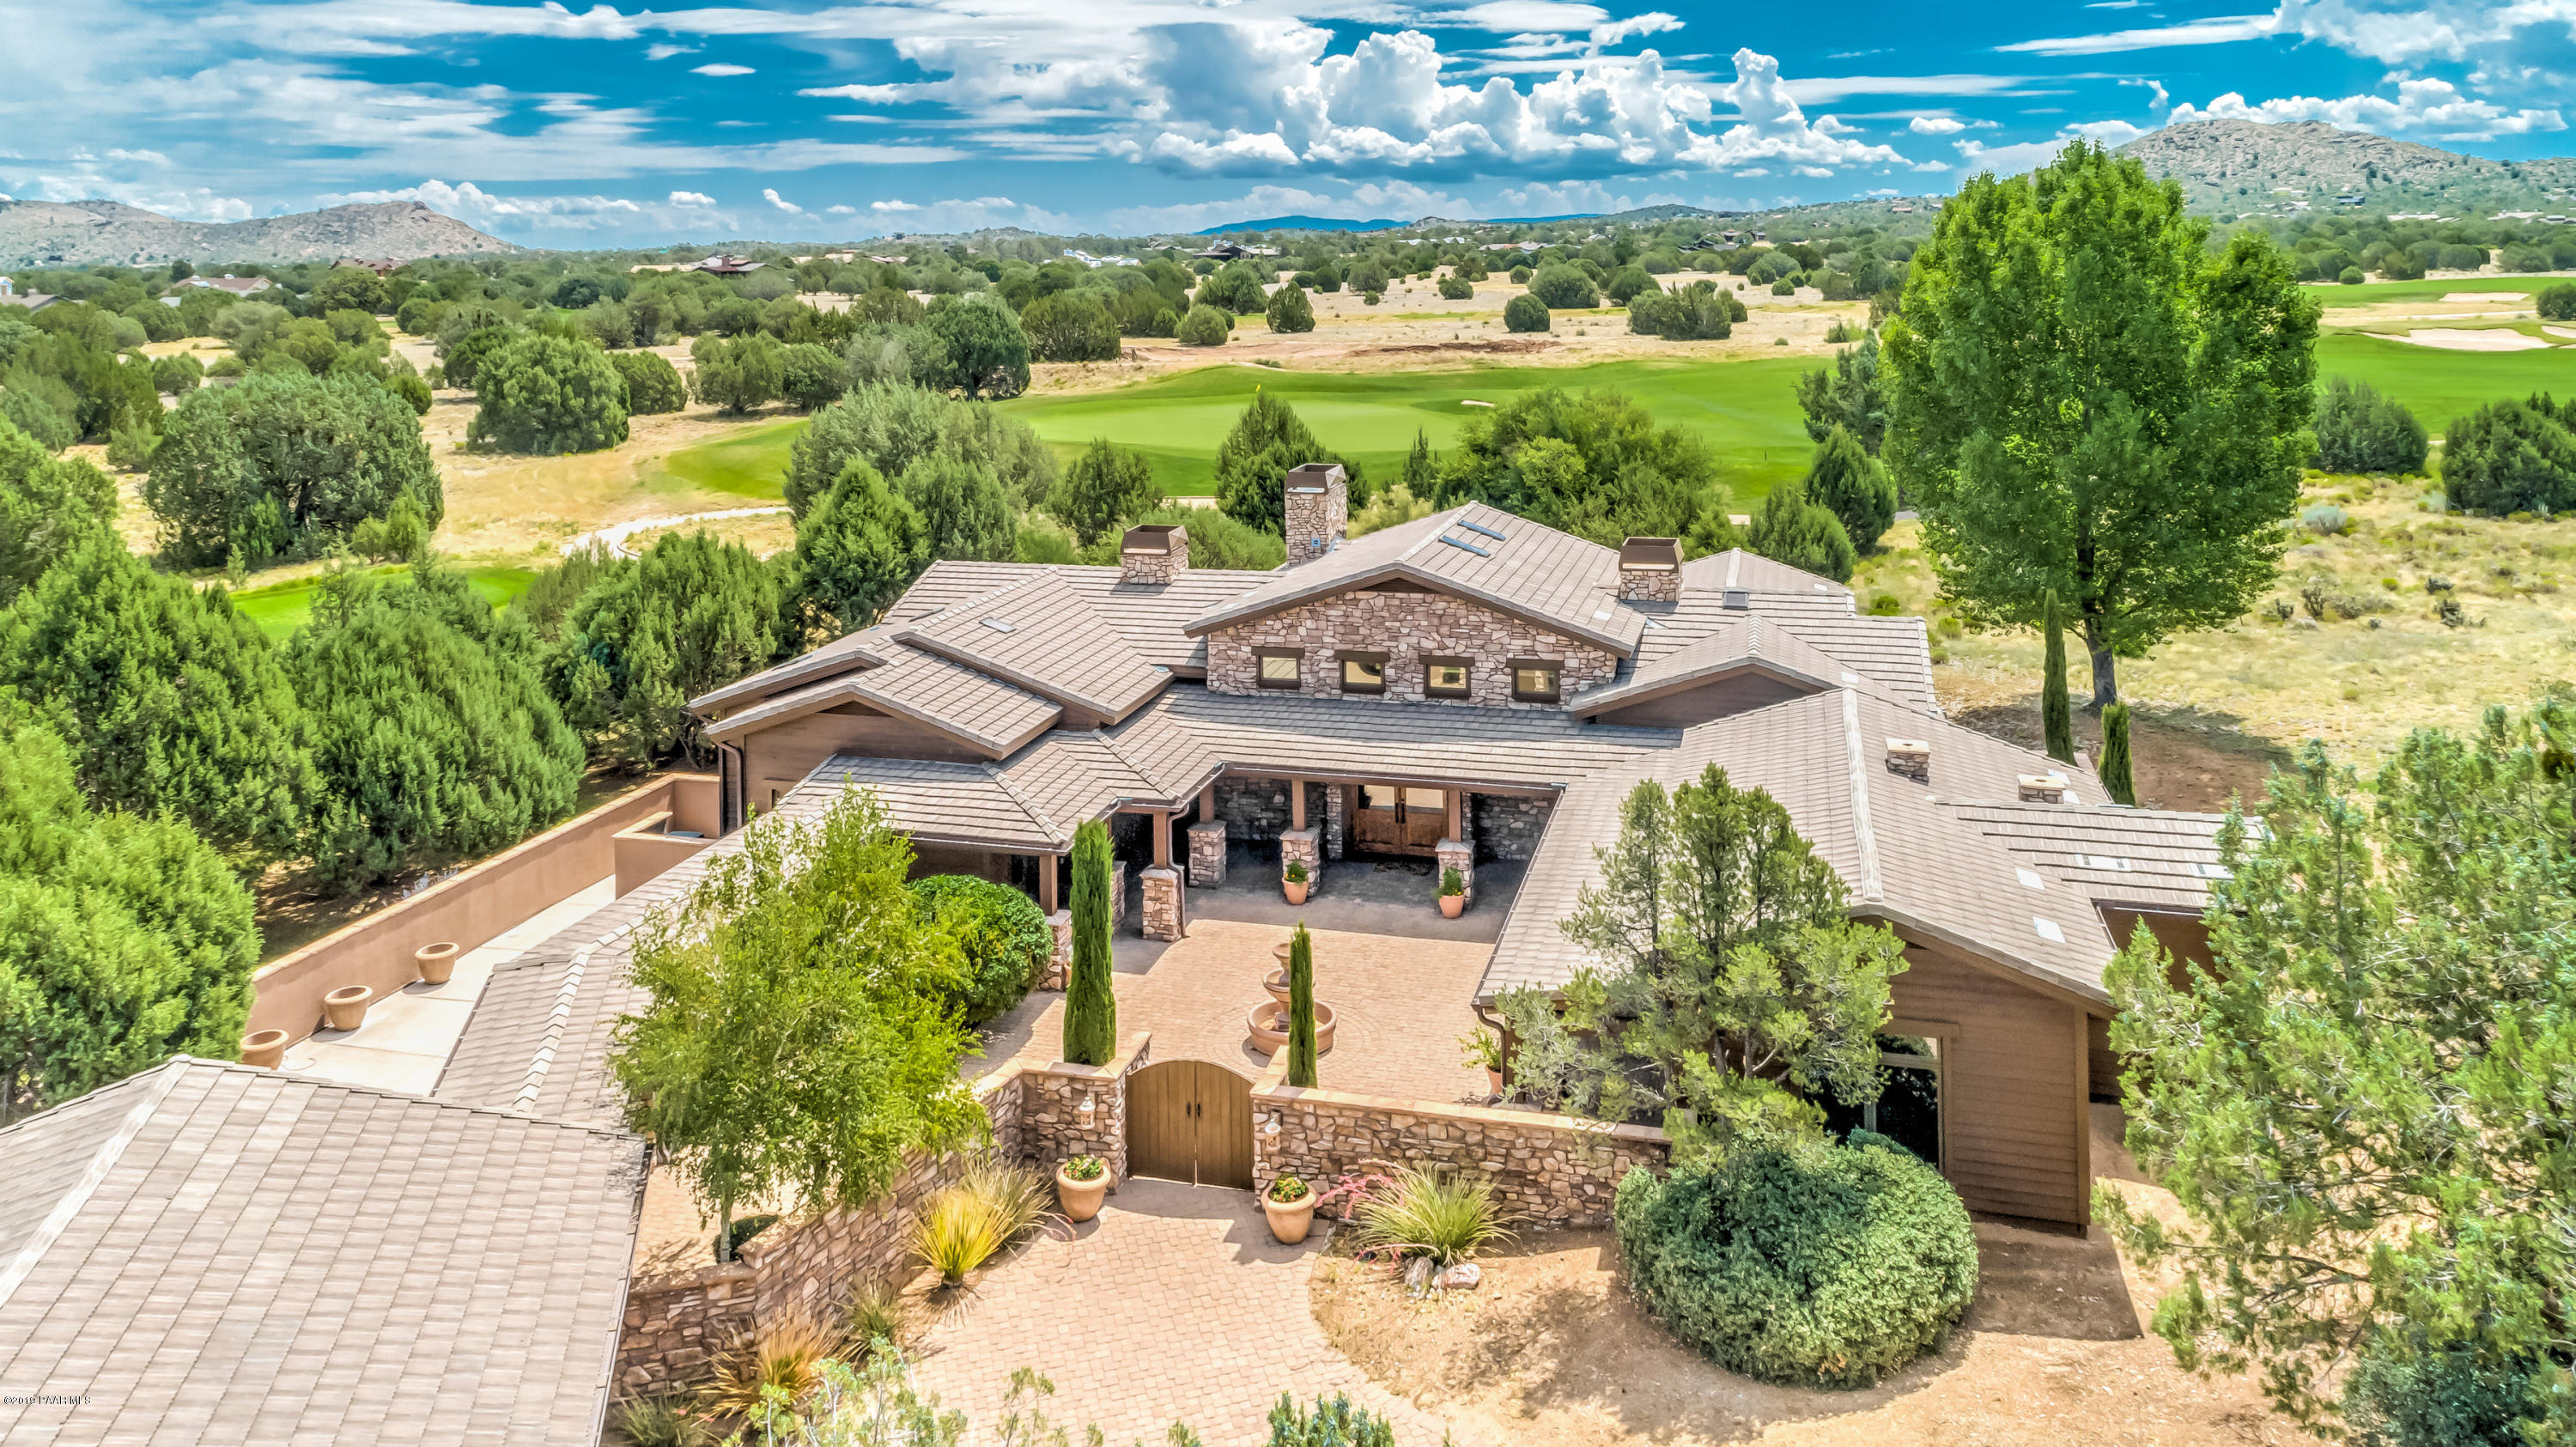 15345 N Badlands Circle, Prescott, Arizona